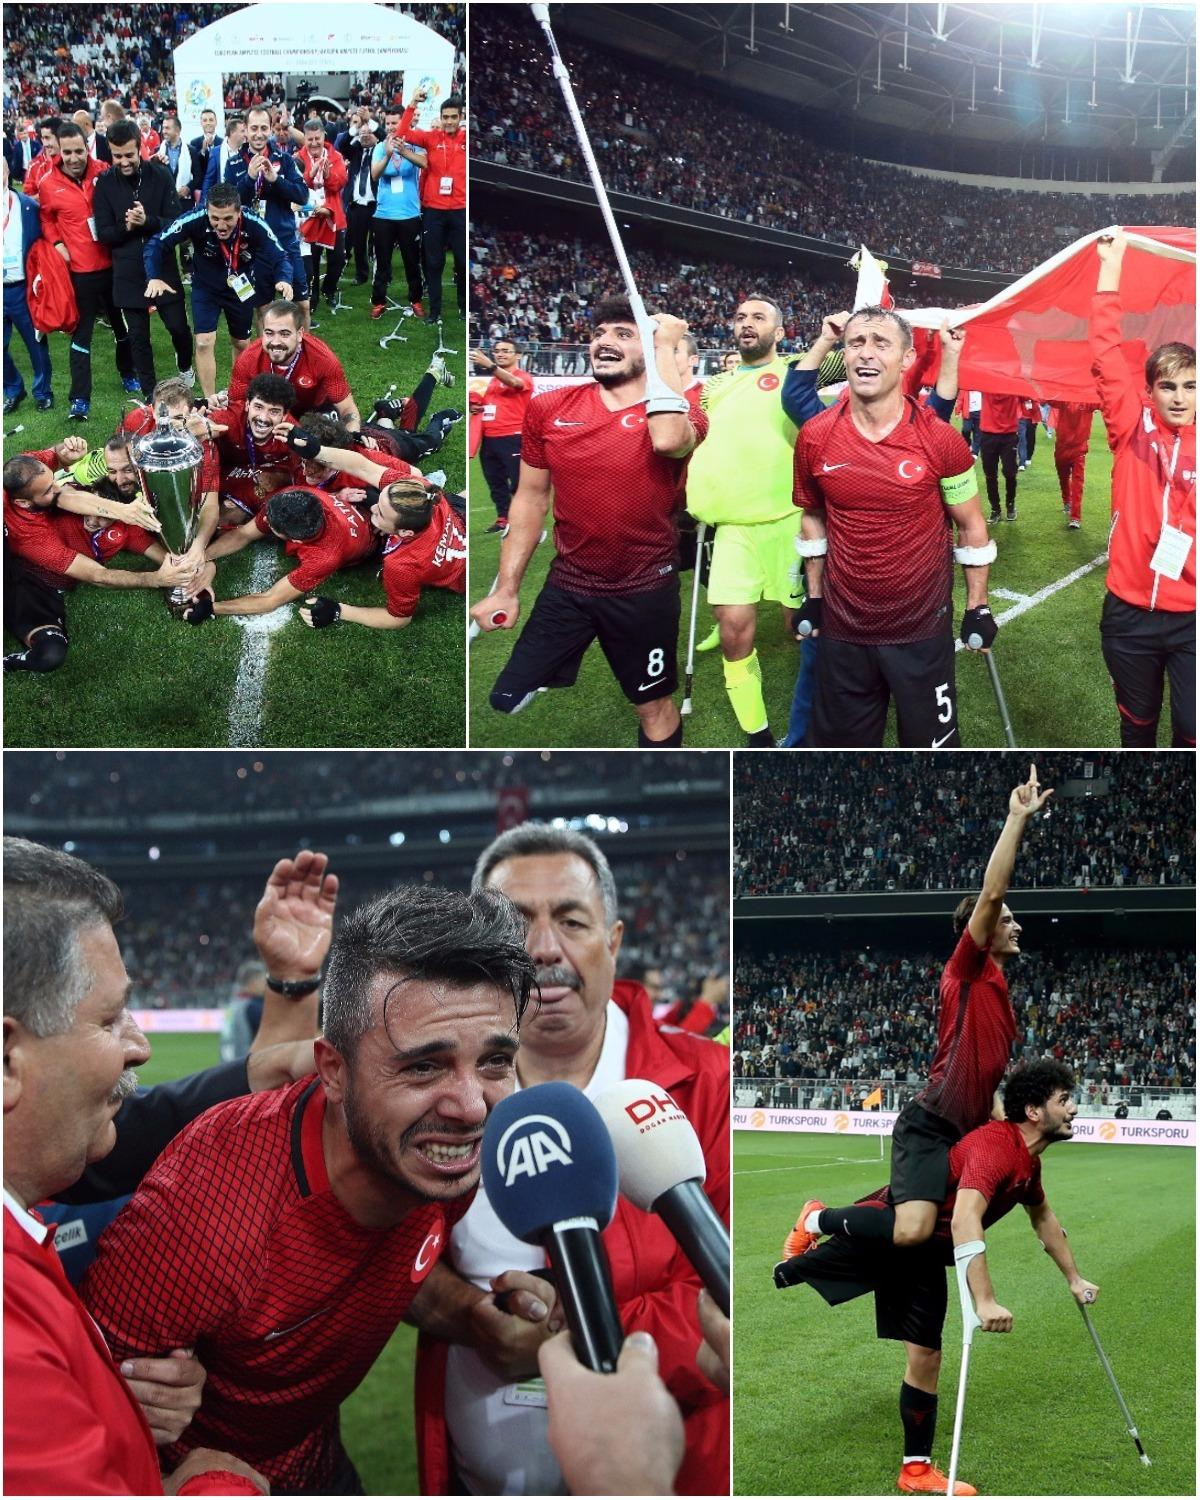 Turkey's reaction to scoring in injury time to win the Amputee European Championship is what makes sports great. https://t.co/hVcPG8NUET